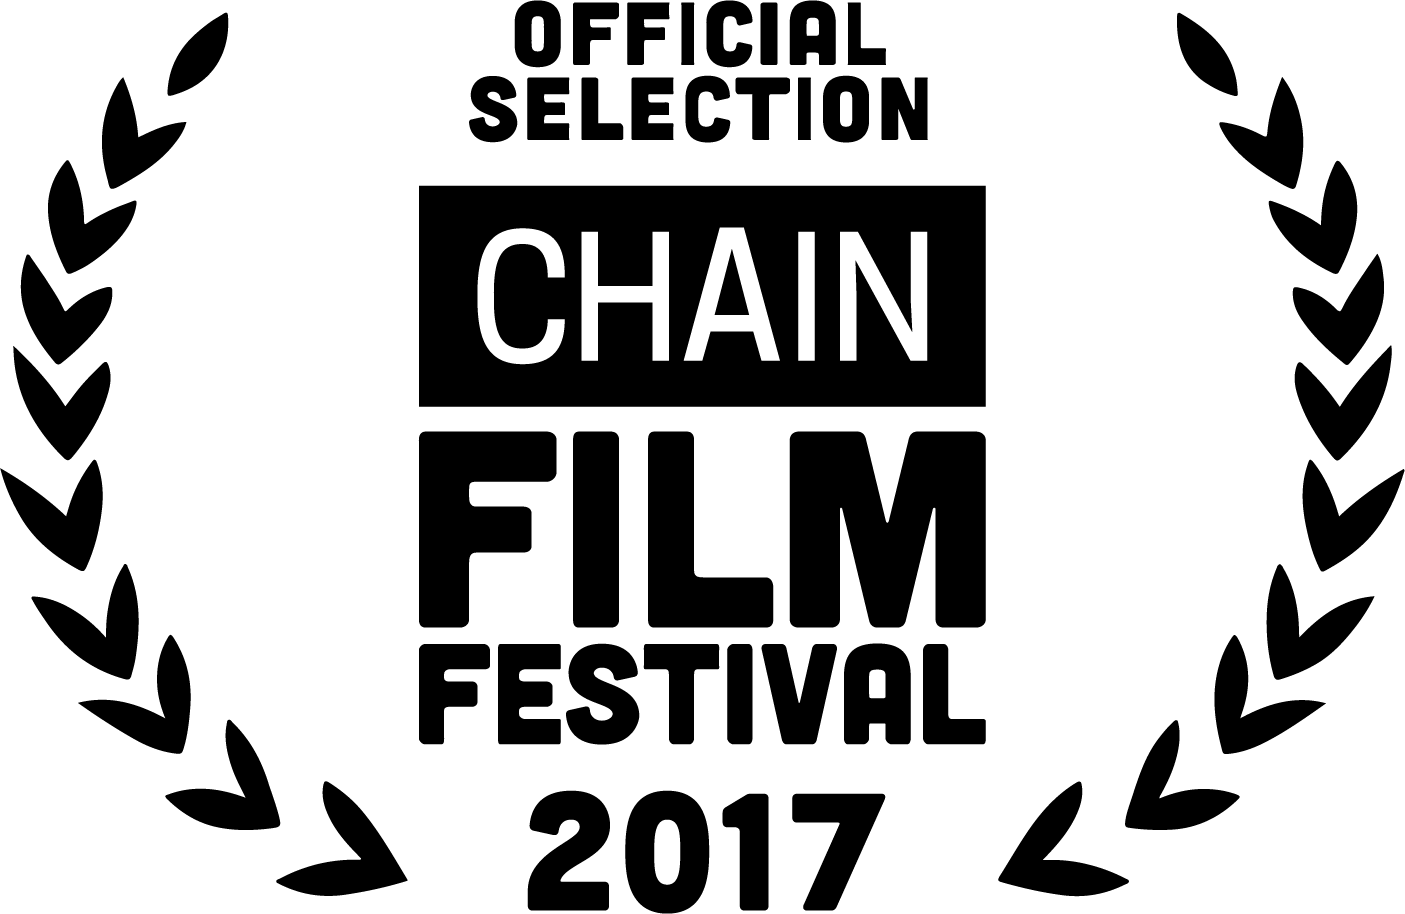 Chain NYC Film Festival_Black.png